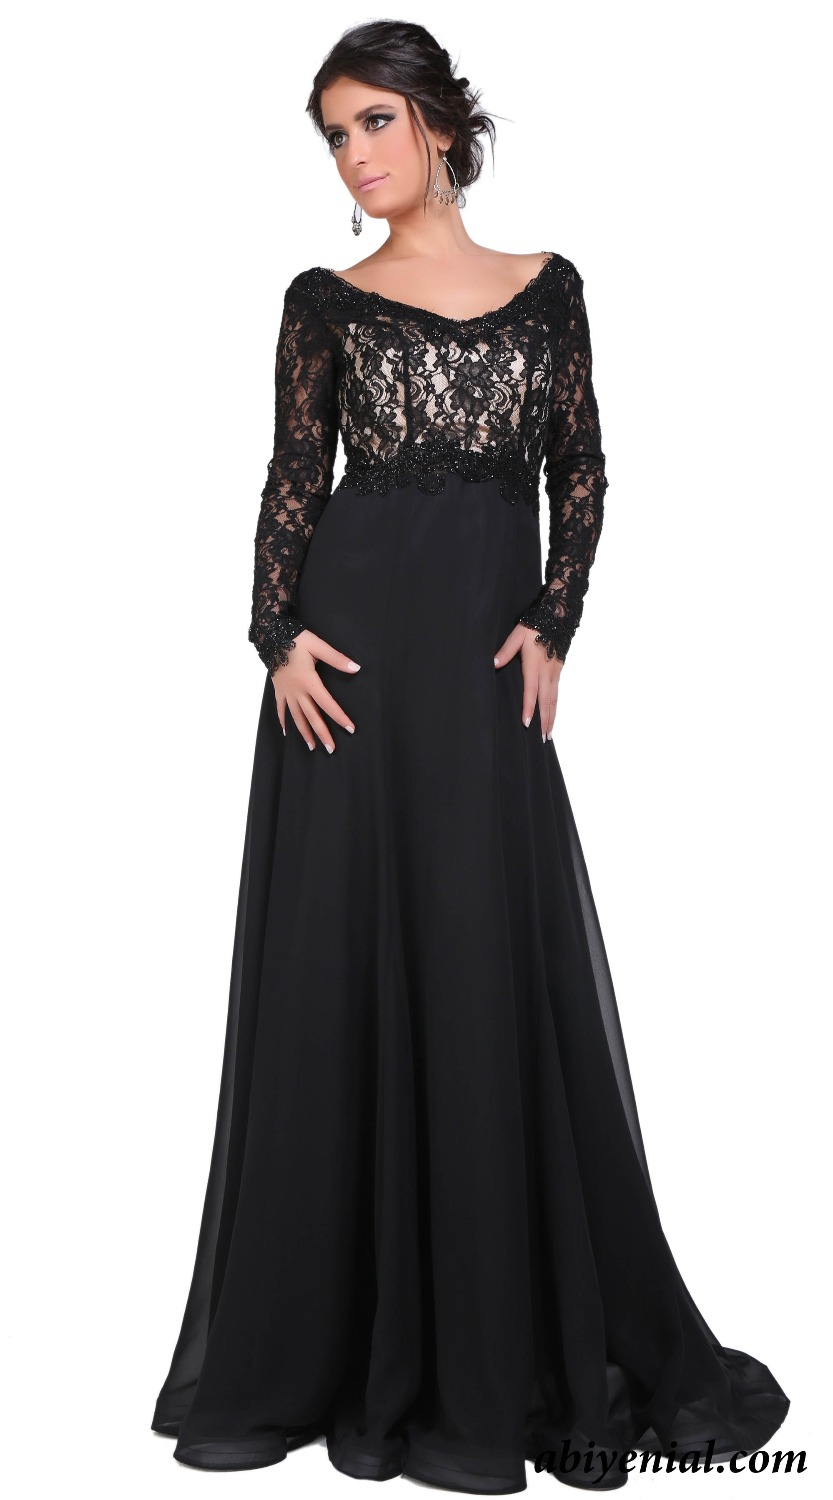 Elegant long evening dress black lace mother formal evening elegant long evening dress black lace mother formal evening dresses long sleeve empire maternity prom party gown vestido bam04 in evening dresses from ombrellifo Gallery